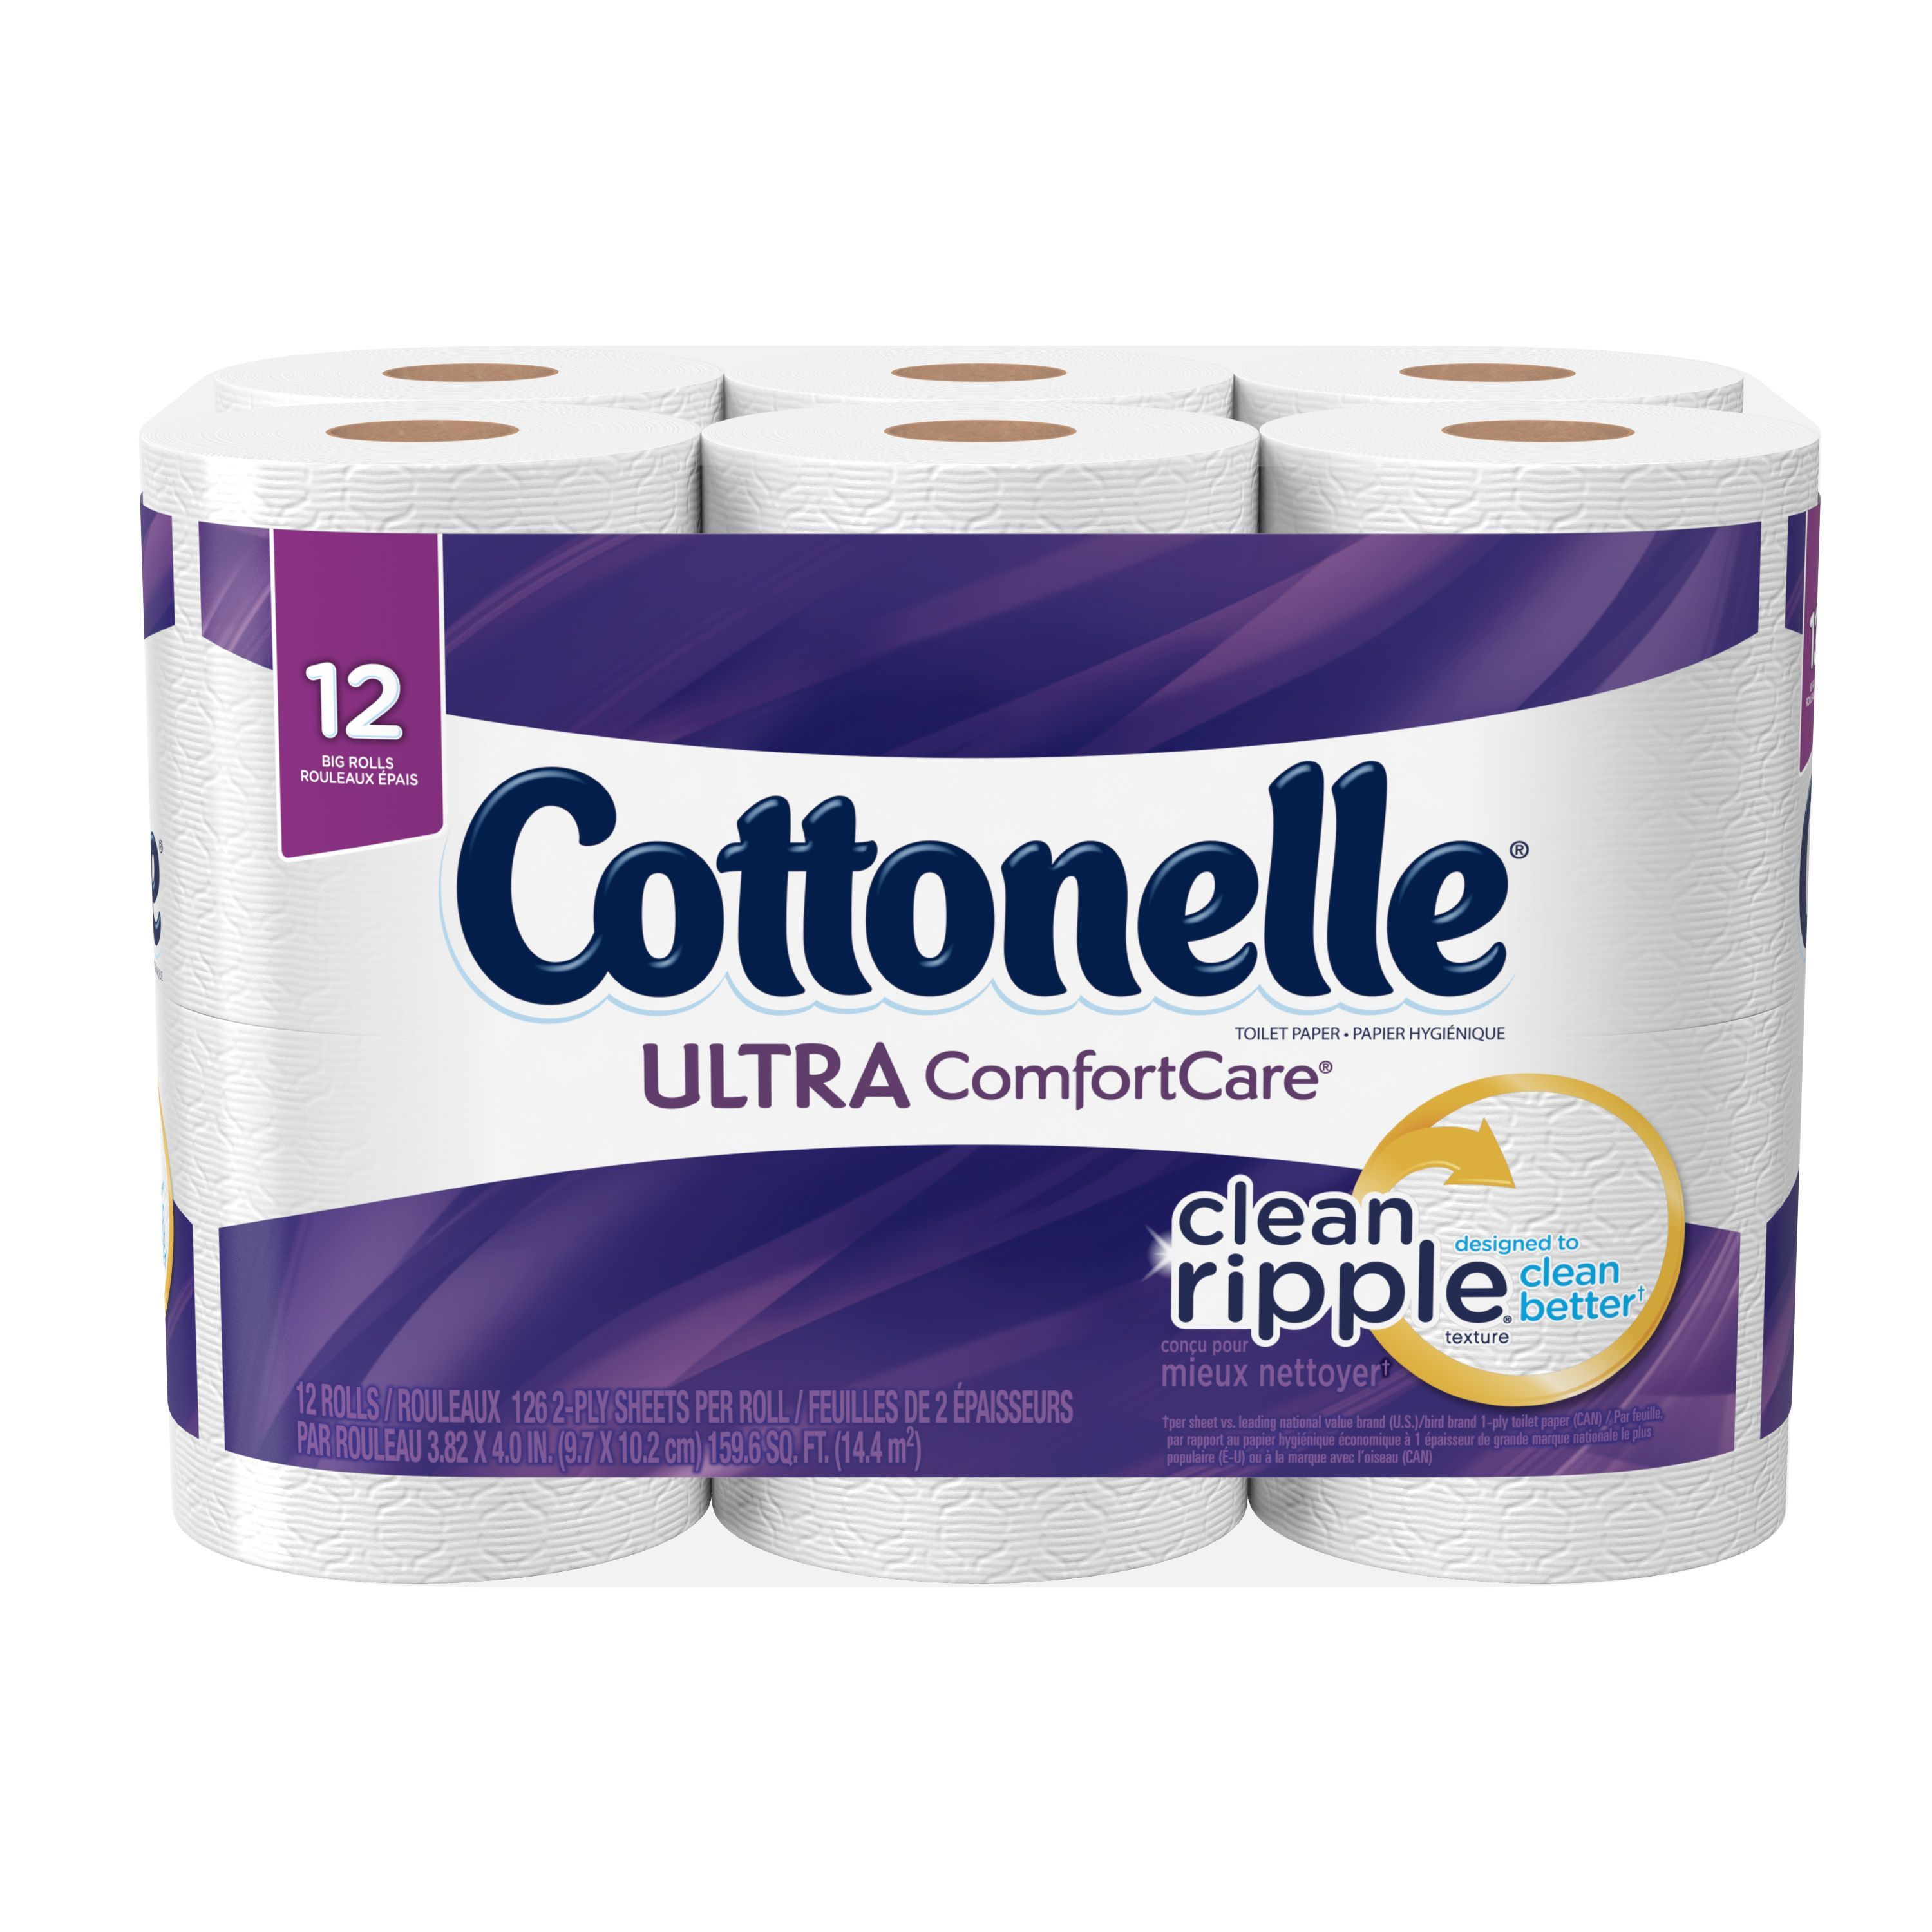 Cottonelle Ultra Comfort Care Big Roll Toilet Paper, 12 Count by KIMBERLY-CLARK